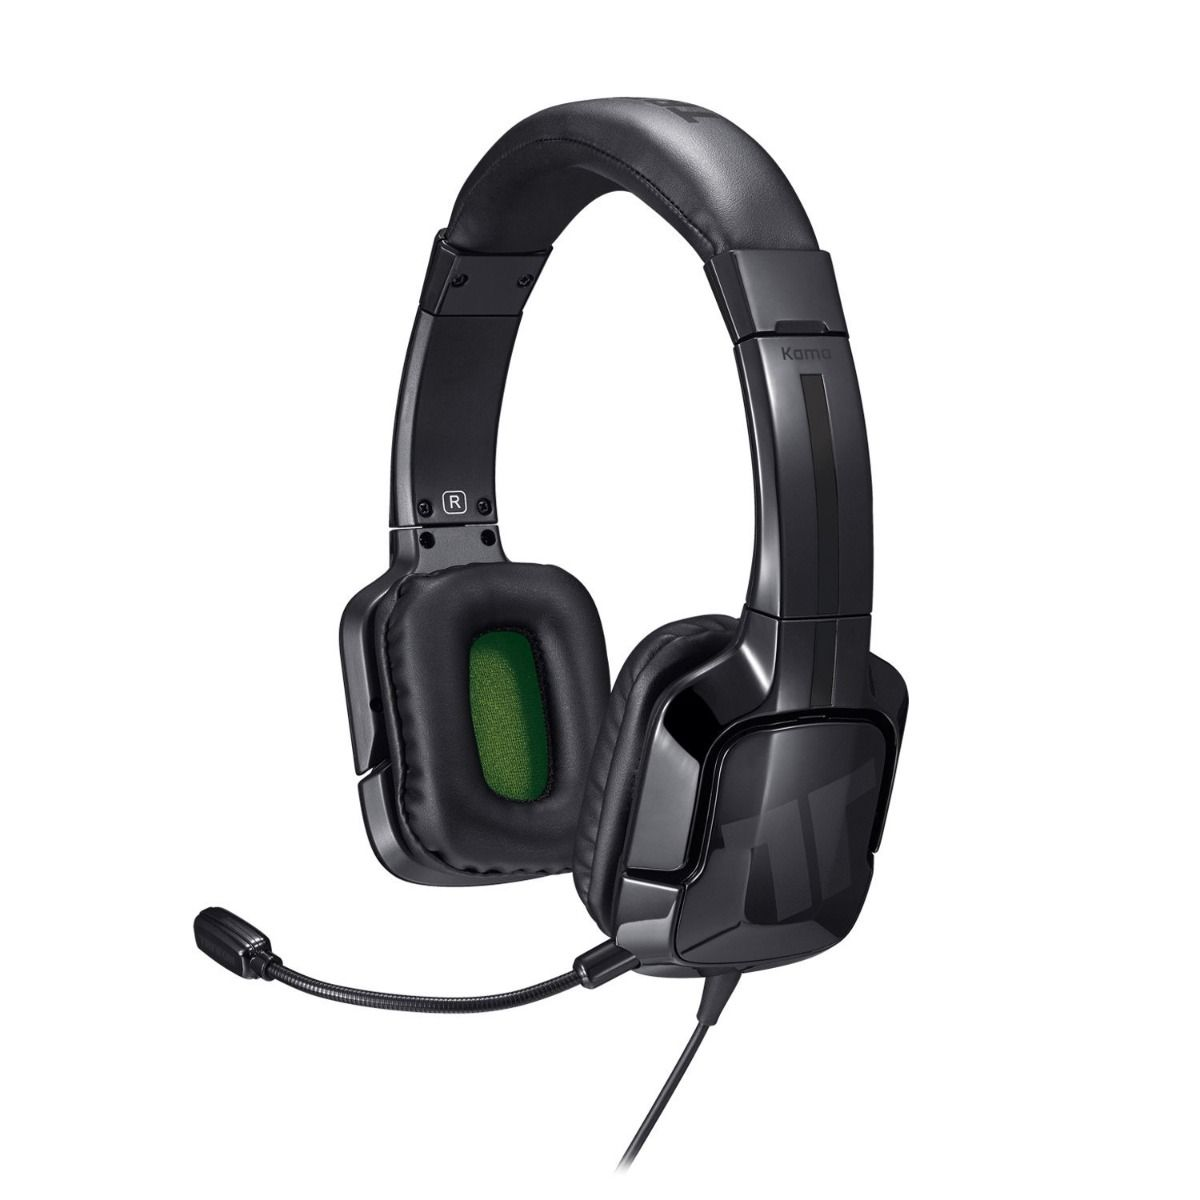 Tritton Kama 3.5mm Stereo Headset - Black (Xbox One)